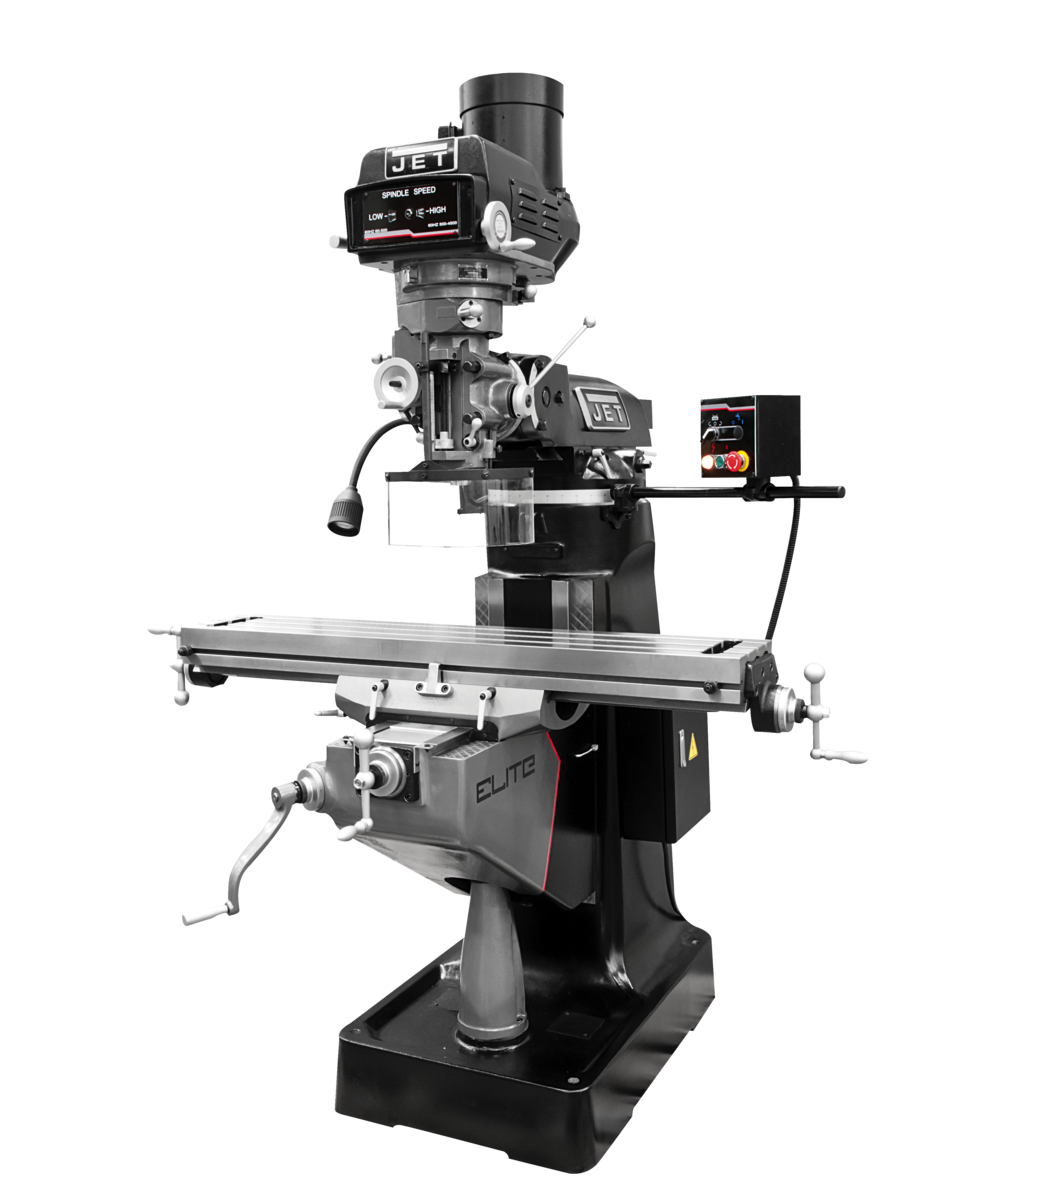 ETM-949 Mill with 3-Axis ACU-RITE 303  (Knee) DRO and X-Axis JET Powerfeed